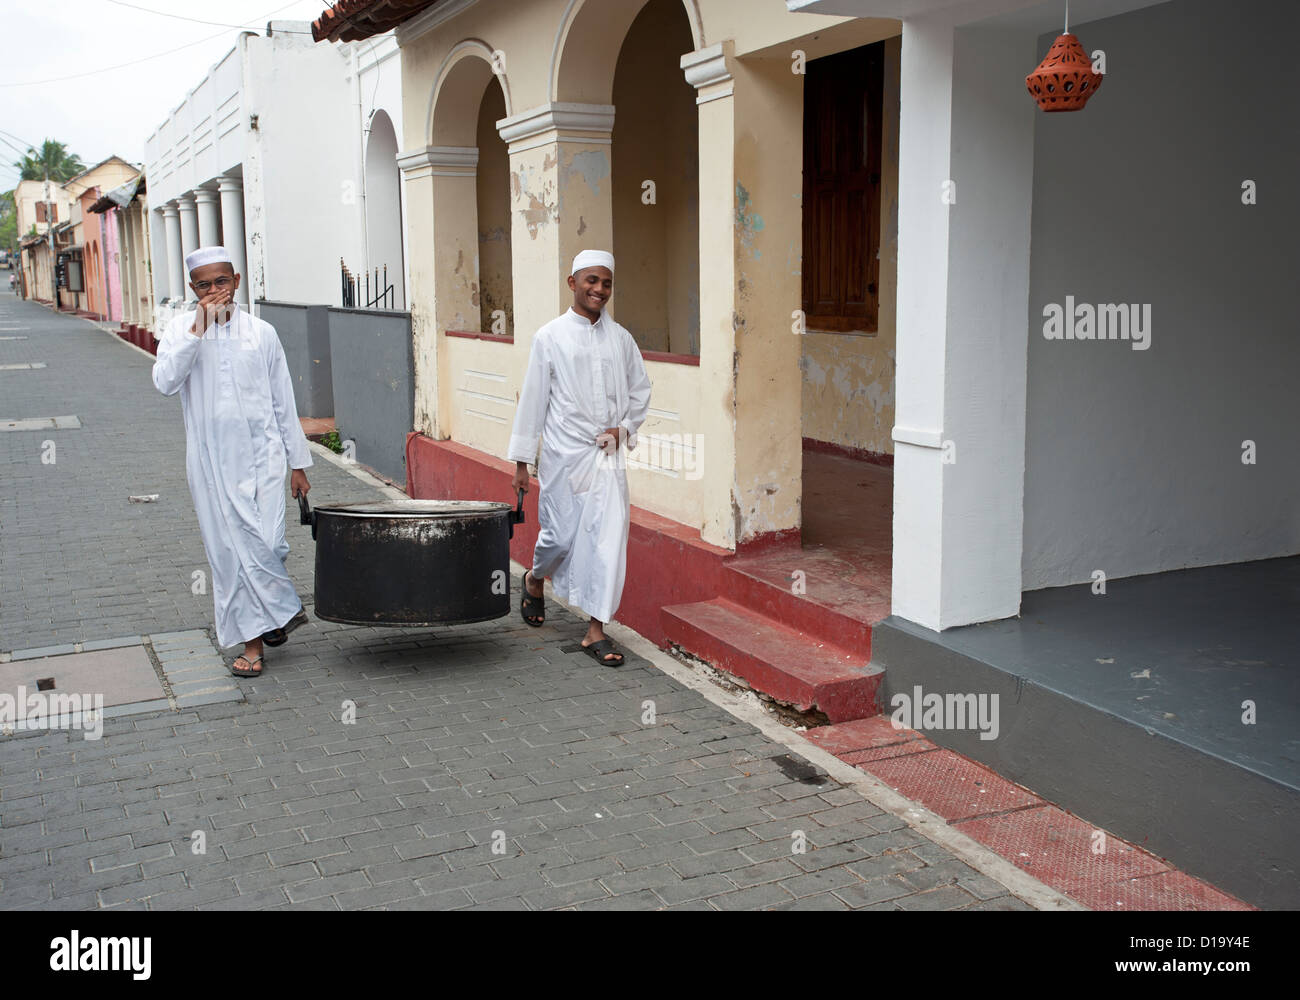 Two Muslim men carry a large cooking pot down a street in Galle Fort Sri Lanka - Stock Image